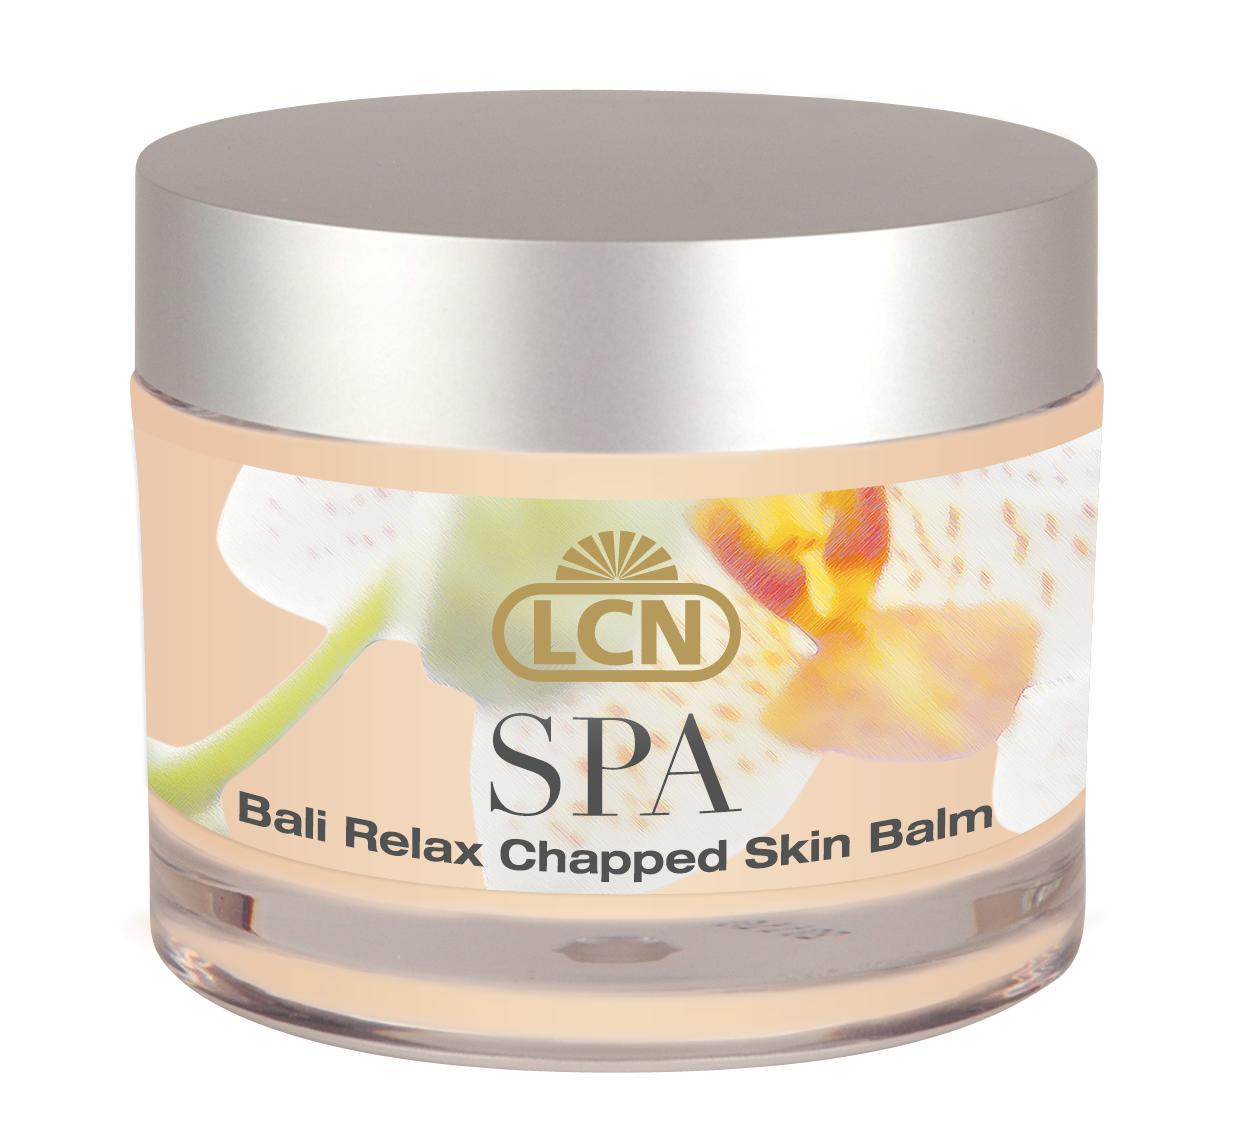 SPA Bali Relax Chapped Skin Balm, 50ml